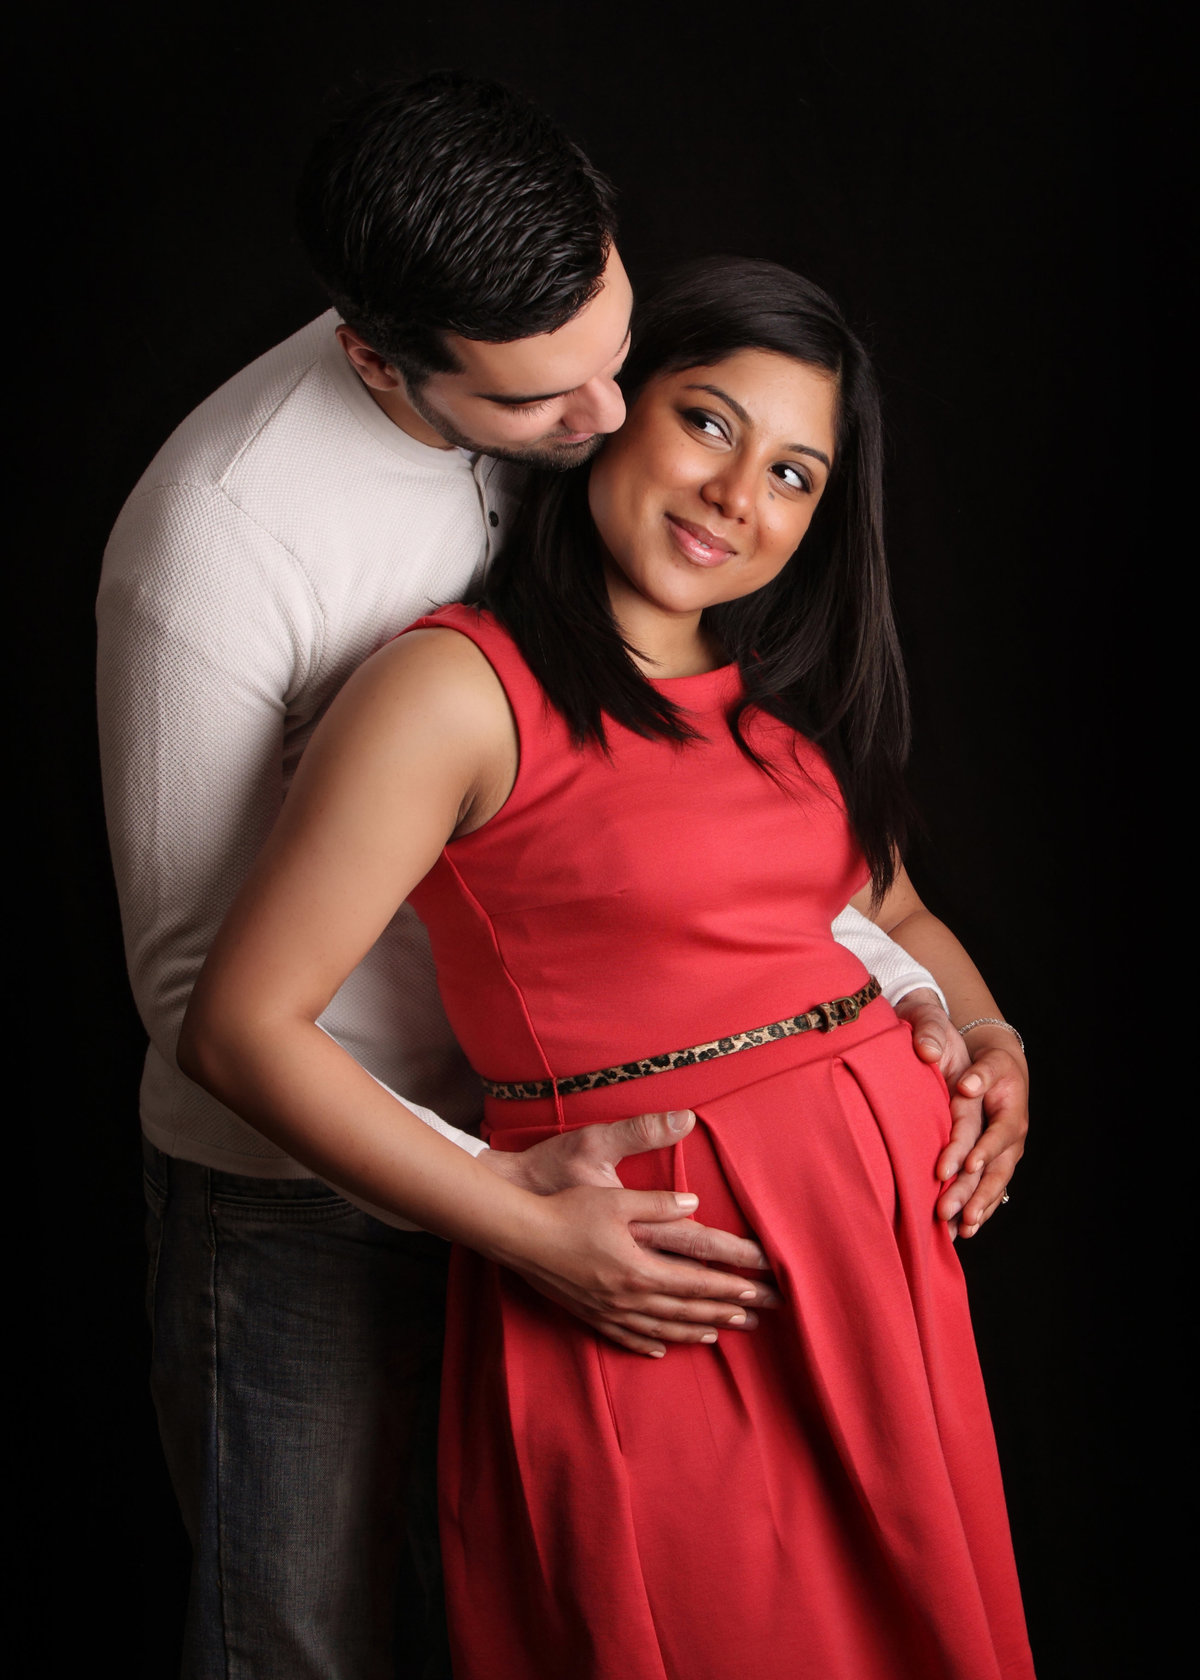 DURHAM_REGION_PREGNANCY_PHOTOGRAPHER_0002crop